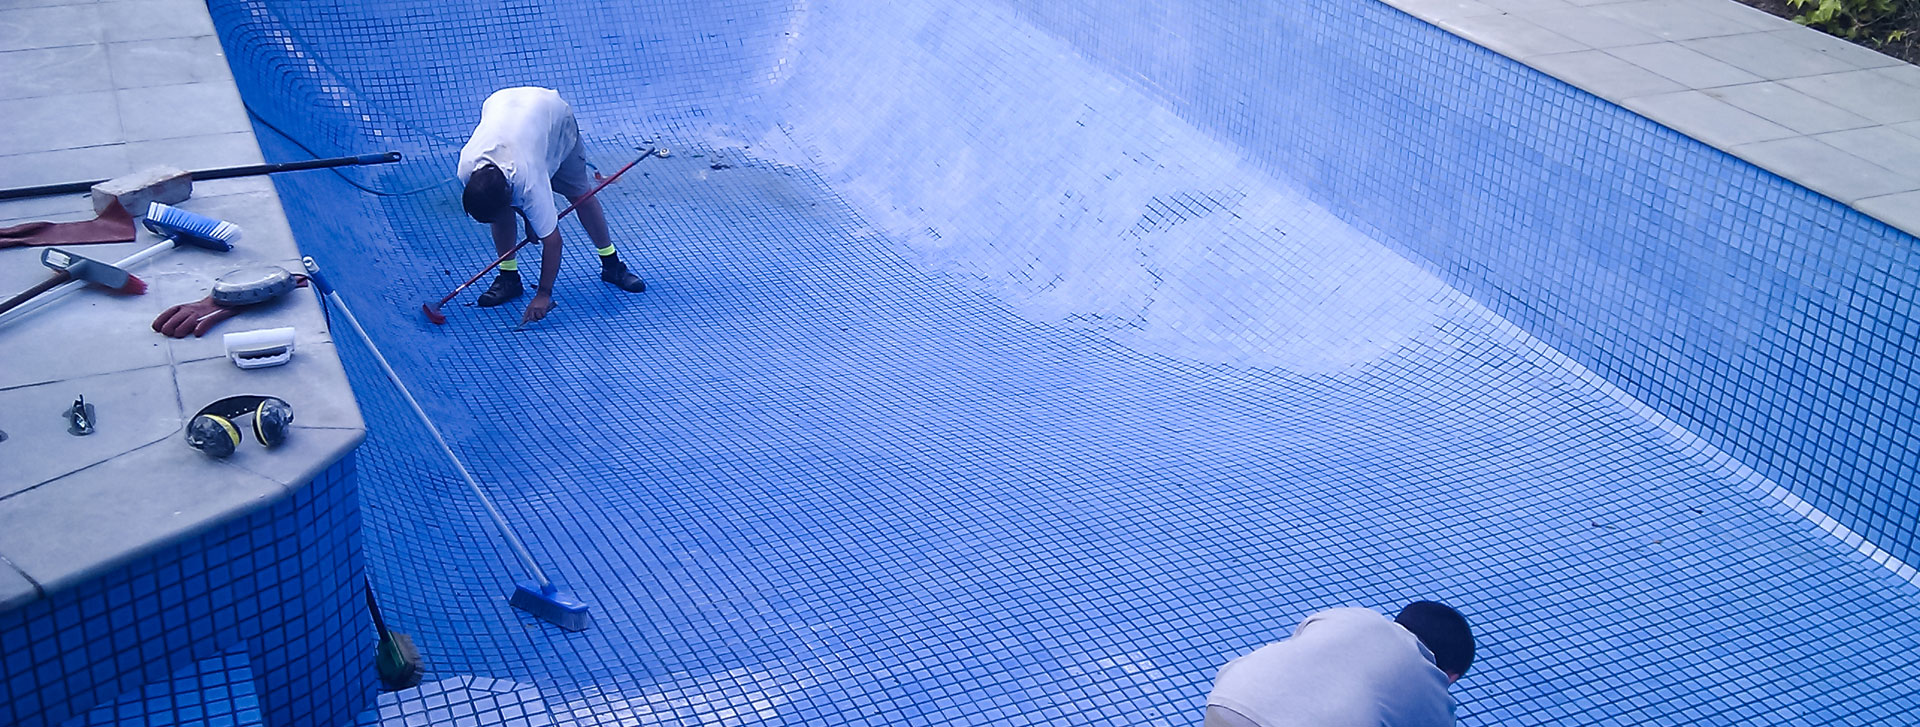 tiling a painted swimming pool